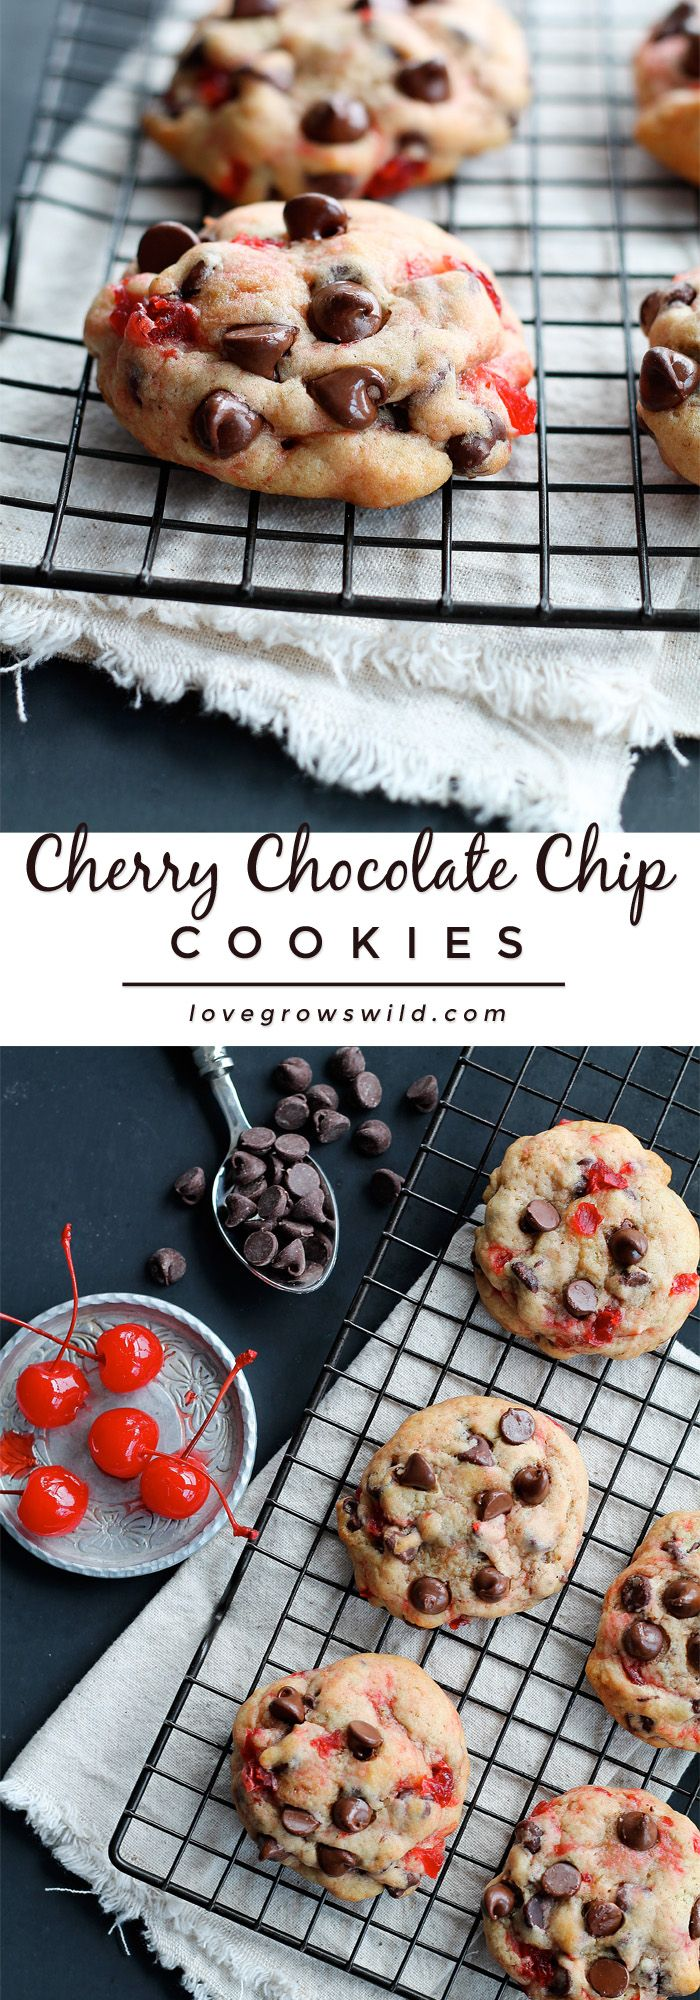 The perfect recipe for big, chewy chocolate chip cookies filled with sweet bites of maraschino cherries and plenty of chocolate. Tastes just like a chocolate-covered cherry in cookie form!   LoveGrowsWild.com